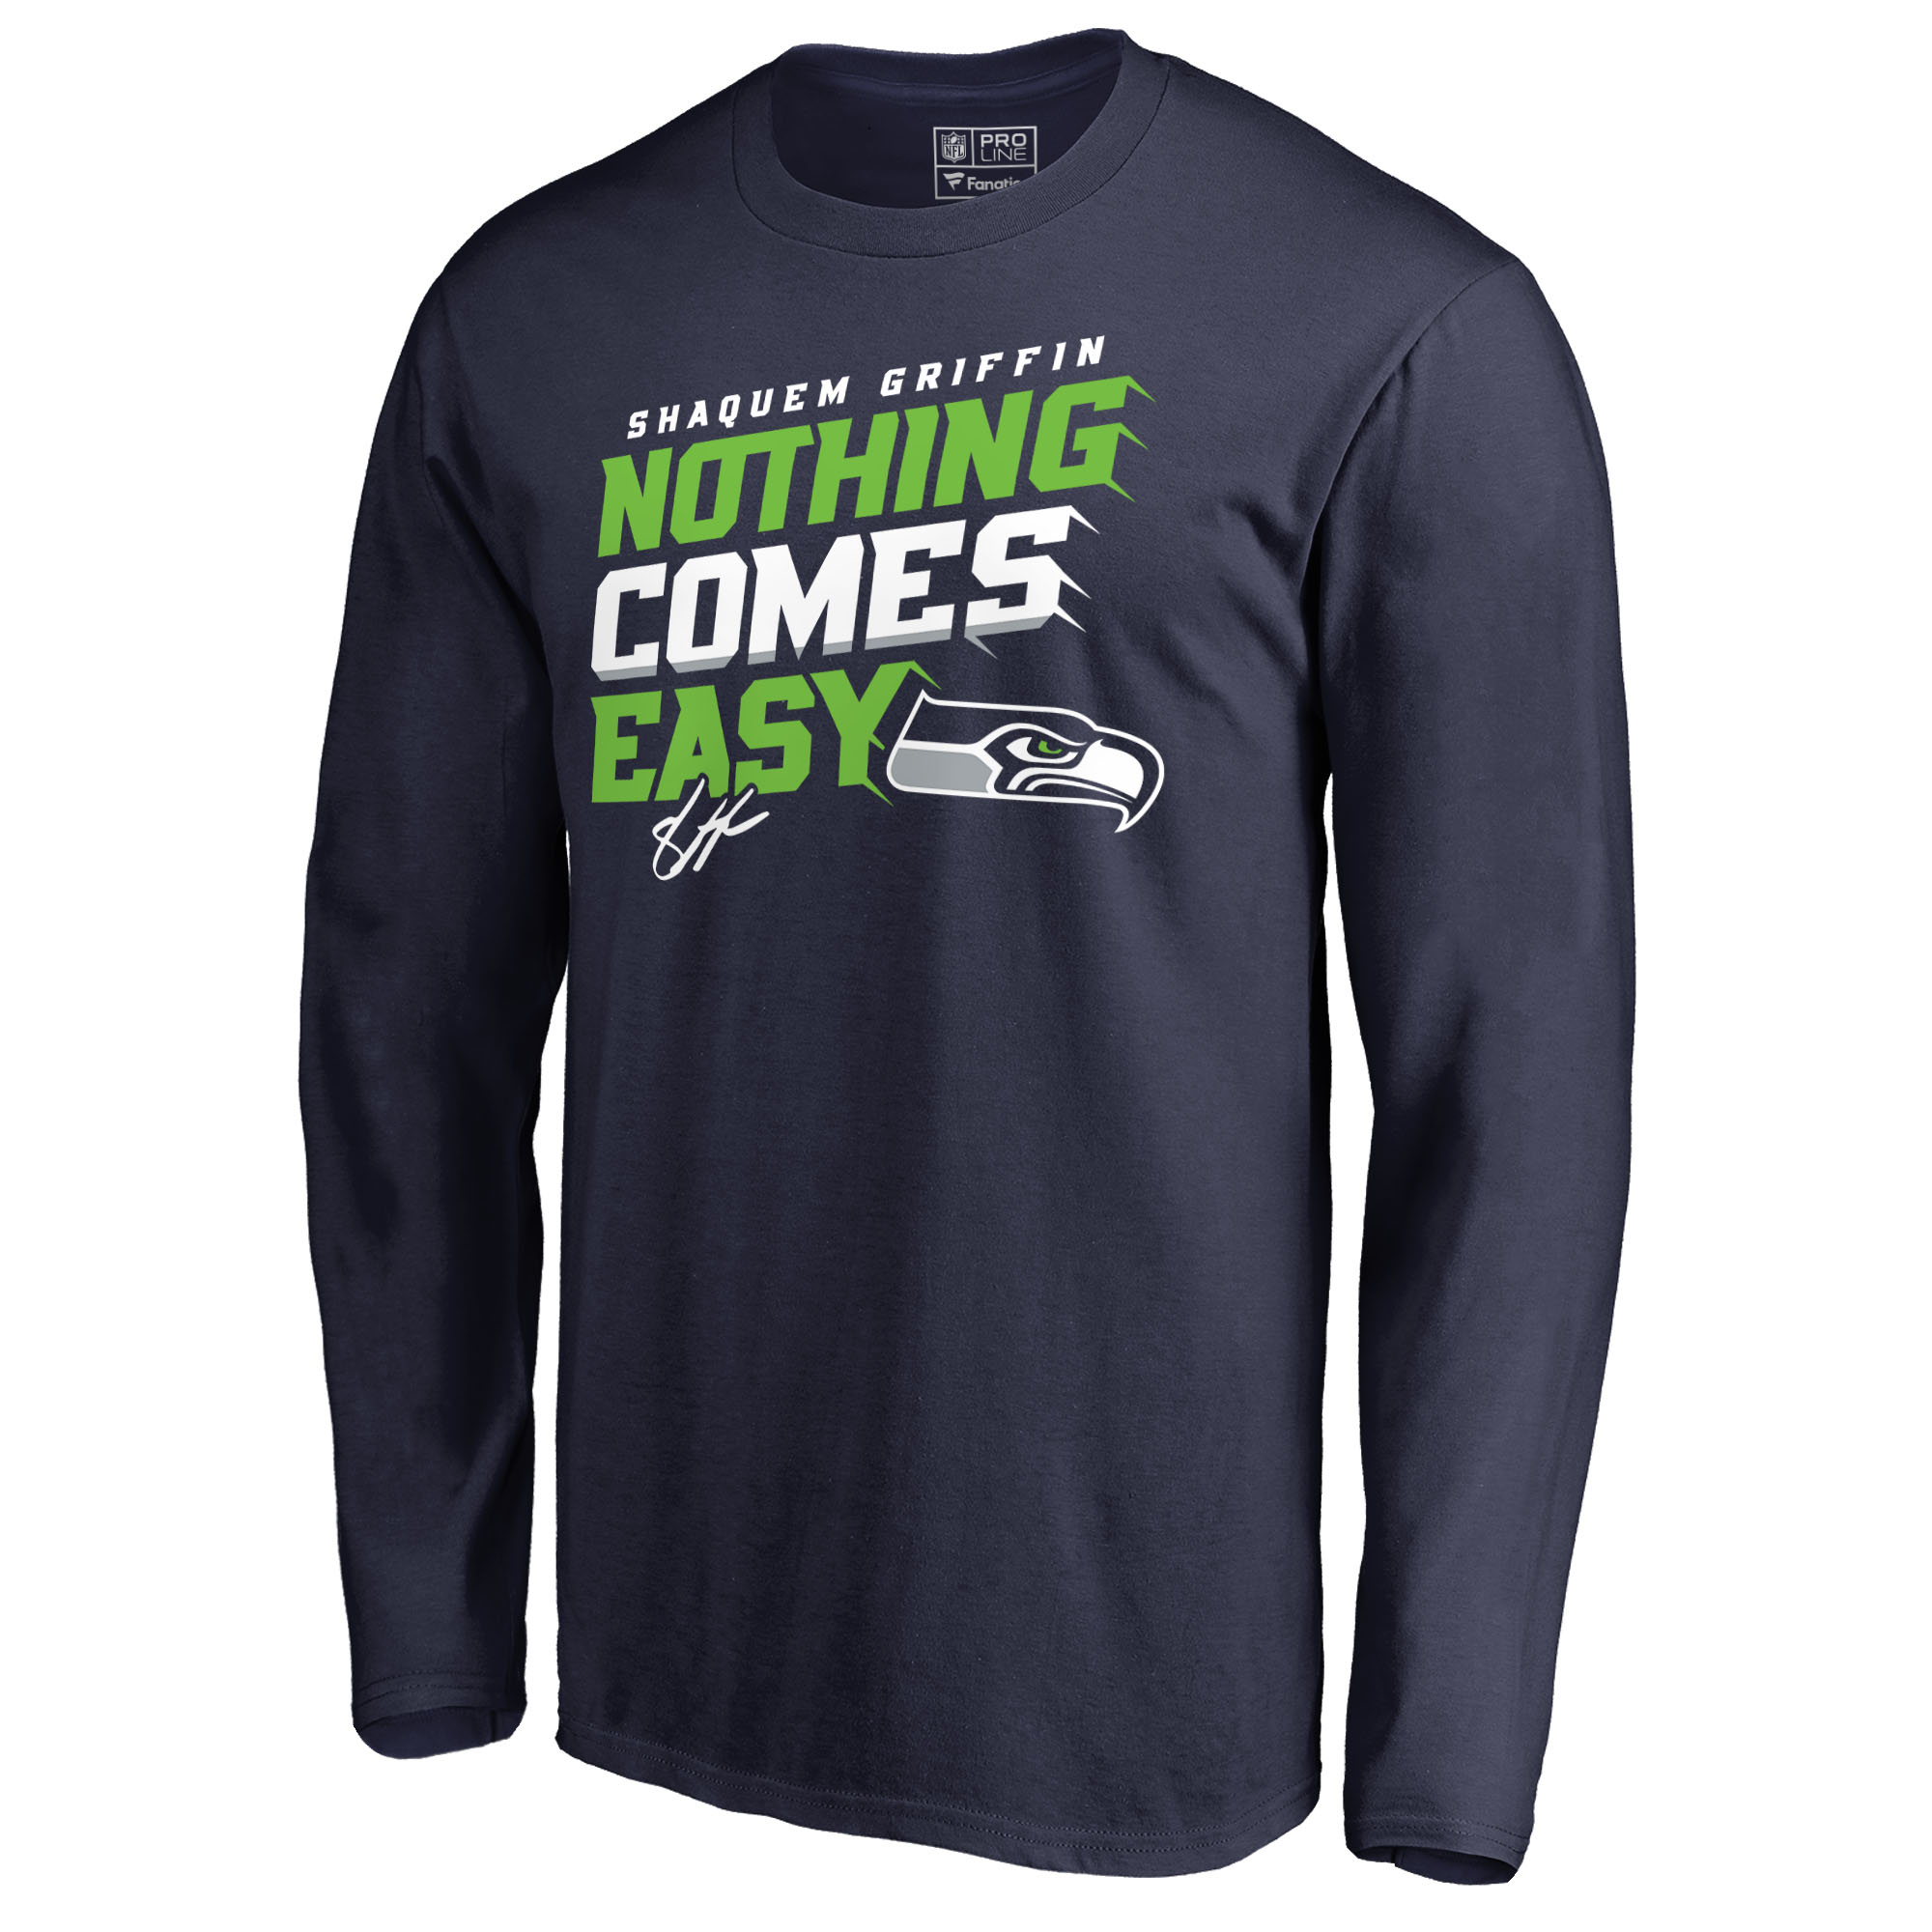 Shaquem Griffin Seattle Seahawks NFL Pro Line by Fanatics Branded Hometown  Collection Nothing Comes Easy Long Sleeve T-Shirt - Navy - Walmart.com 8a4df8e77